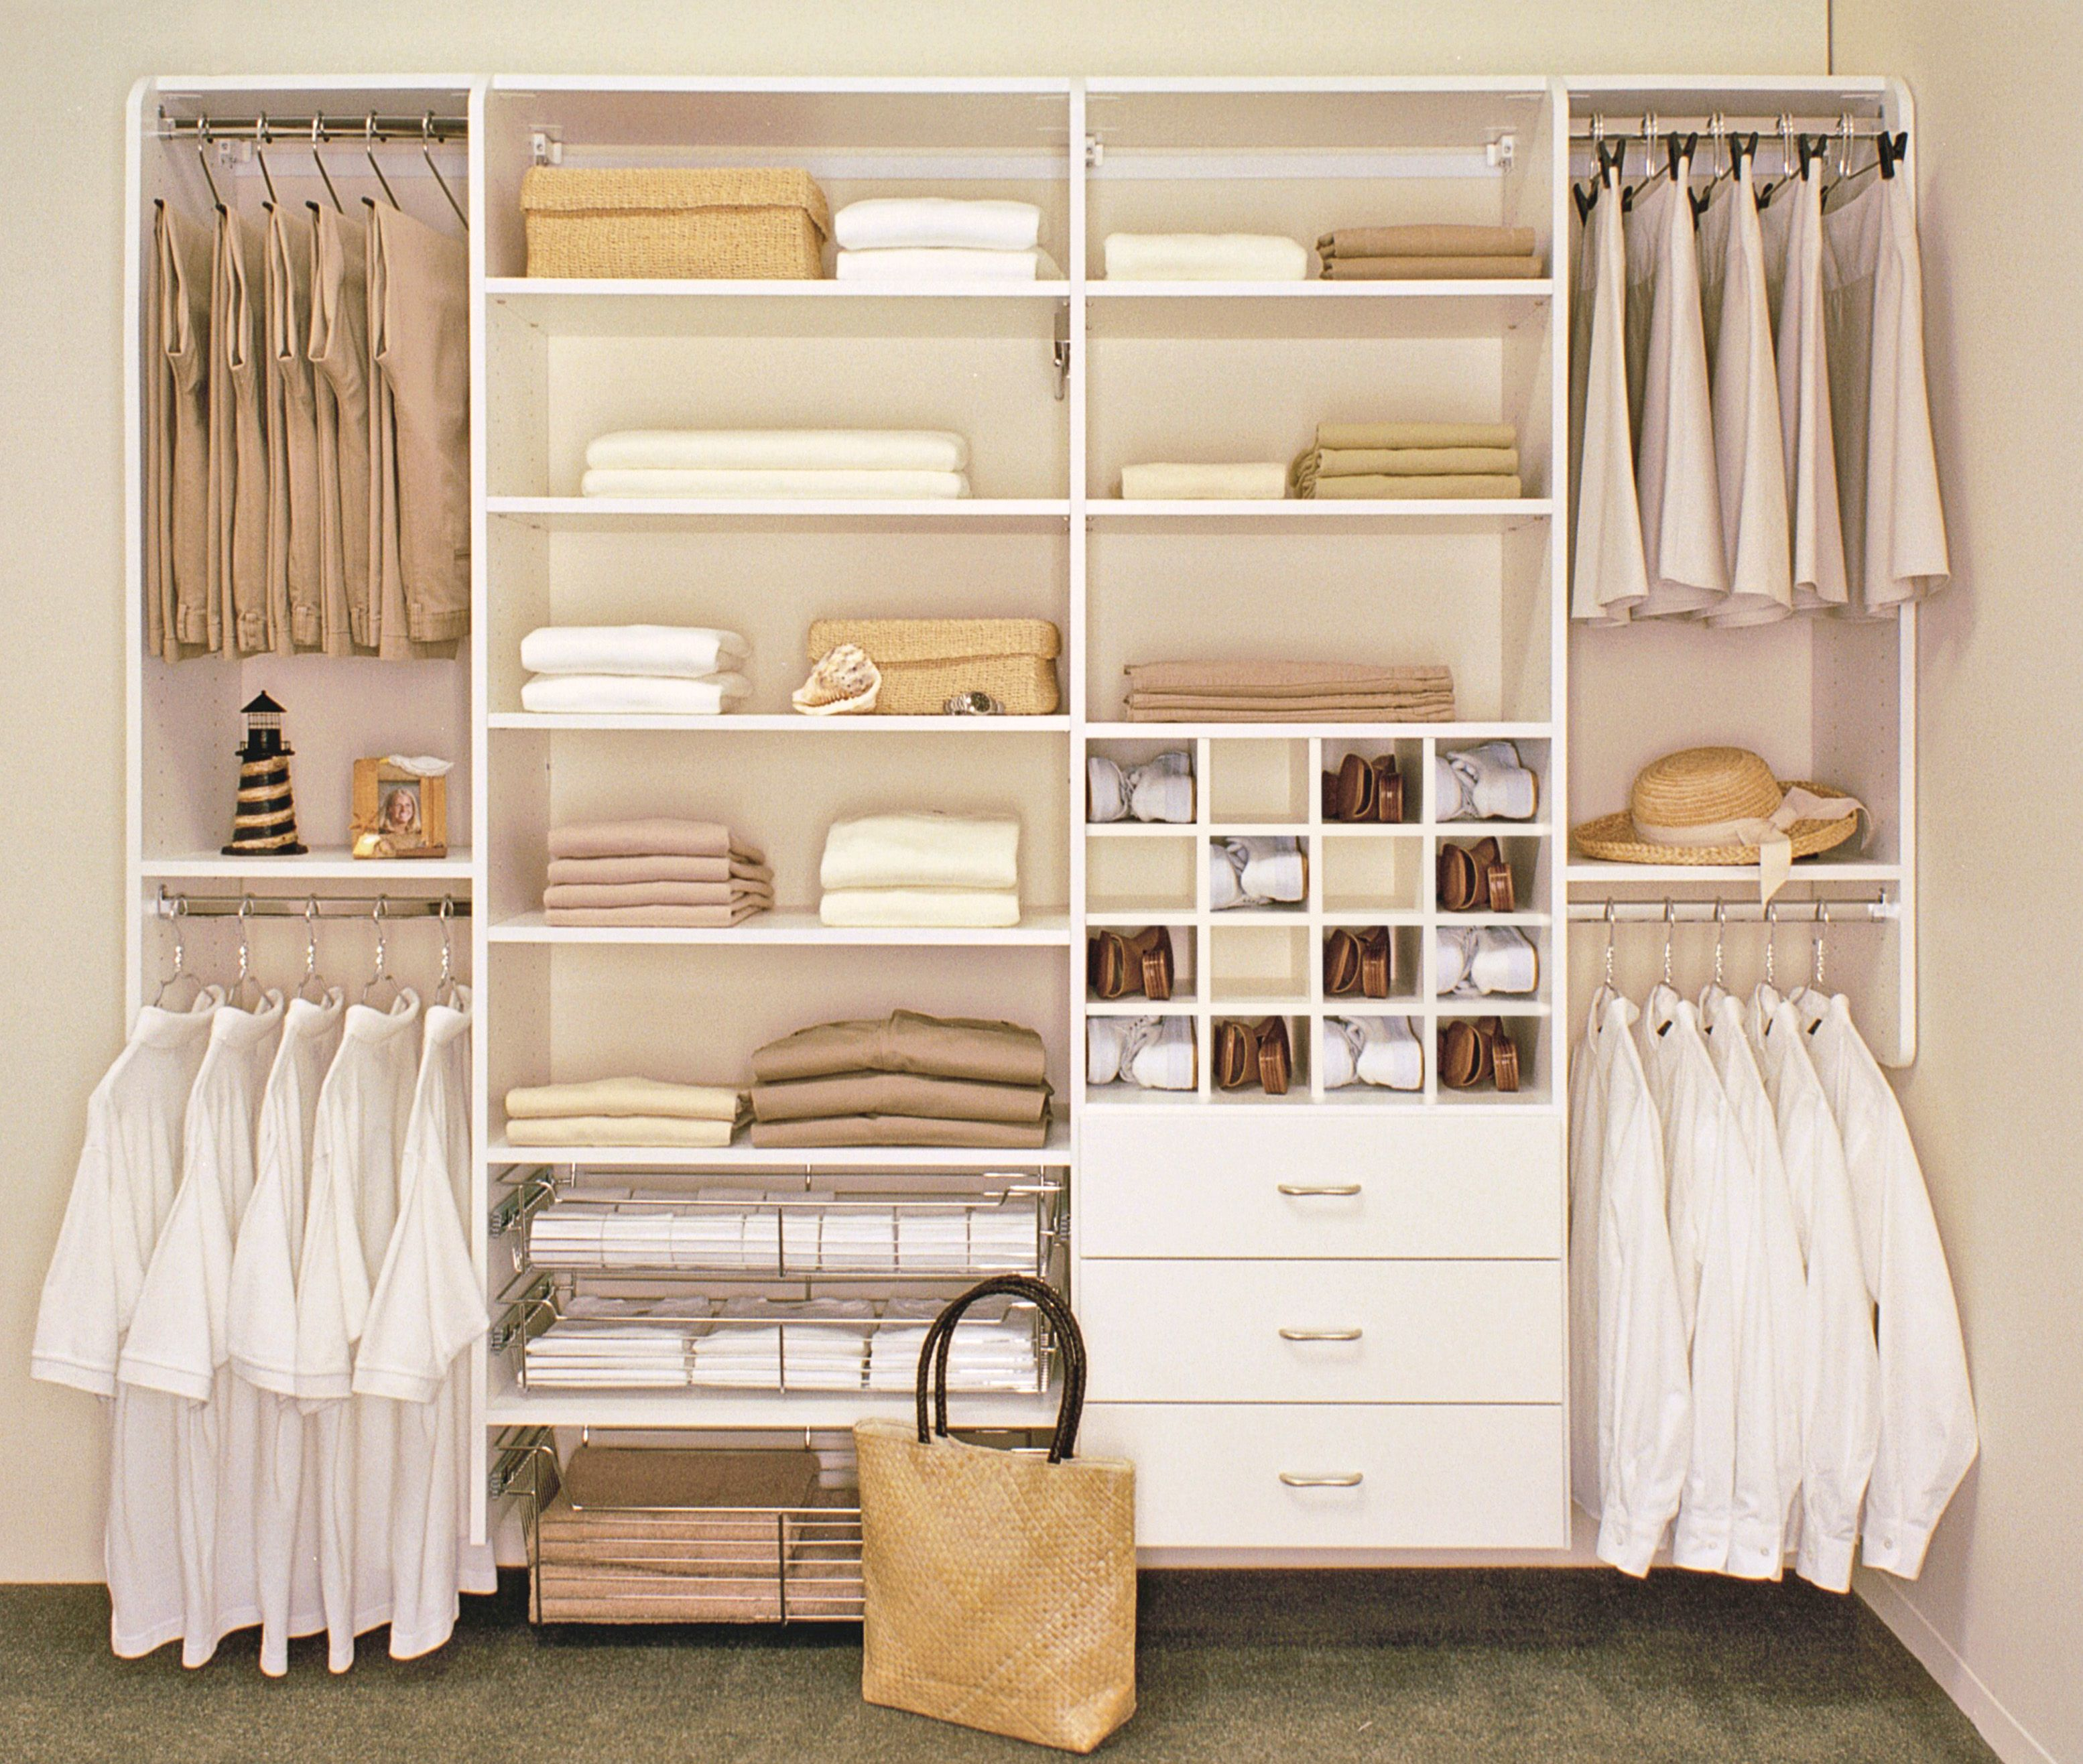 Interior Nice Looking White Wooden Custom Closet Design Ideas With Great Storage System As Well Clothing Racks And Hangers Simplist